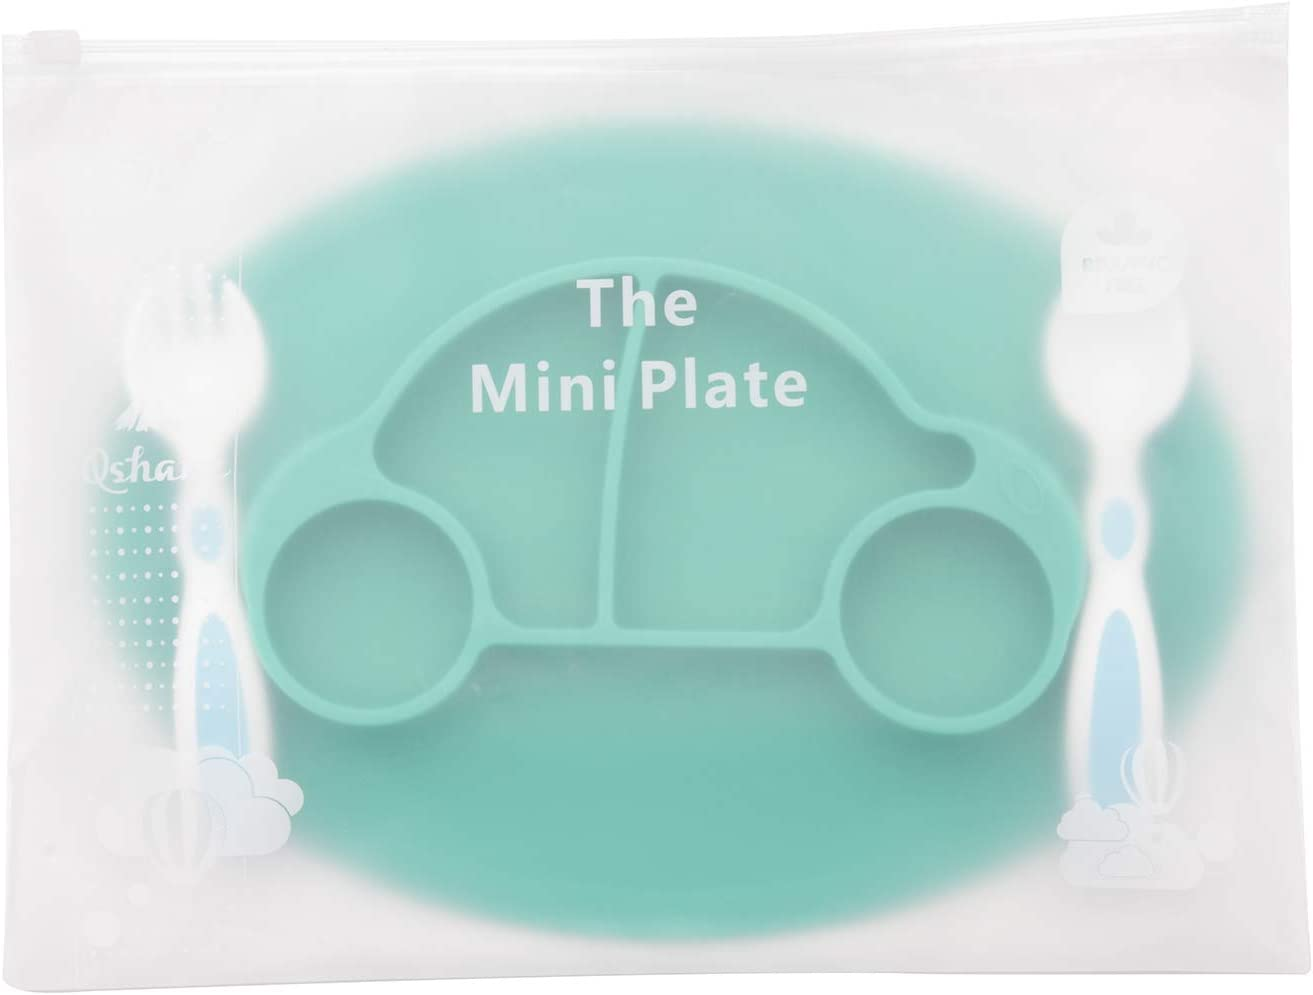 Non-Slip Feeding Suction Plate for Toddlers Babies Kids Fits Most Highchair Trays BPA-Free FDA Approved Baby Silicone Placemat Dishwasher and Microwave Safe with Spoon and Fork